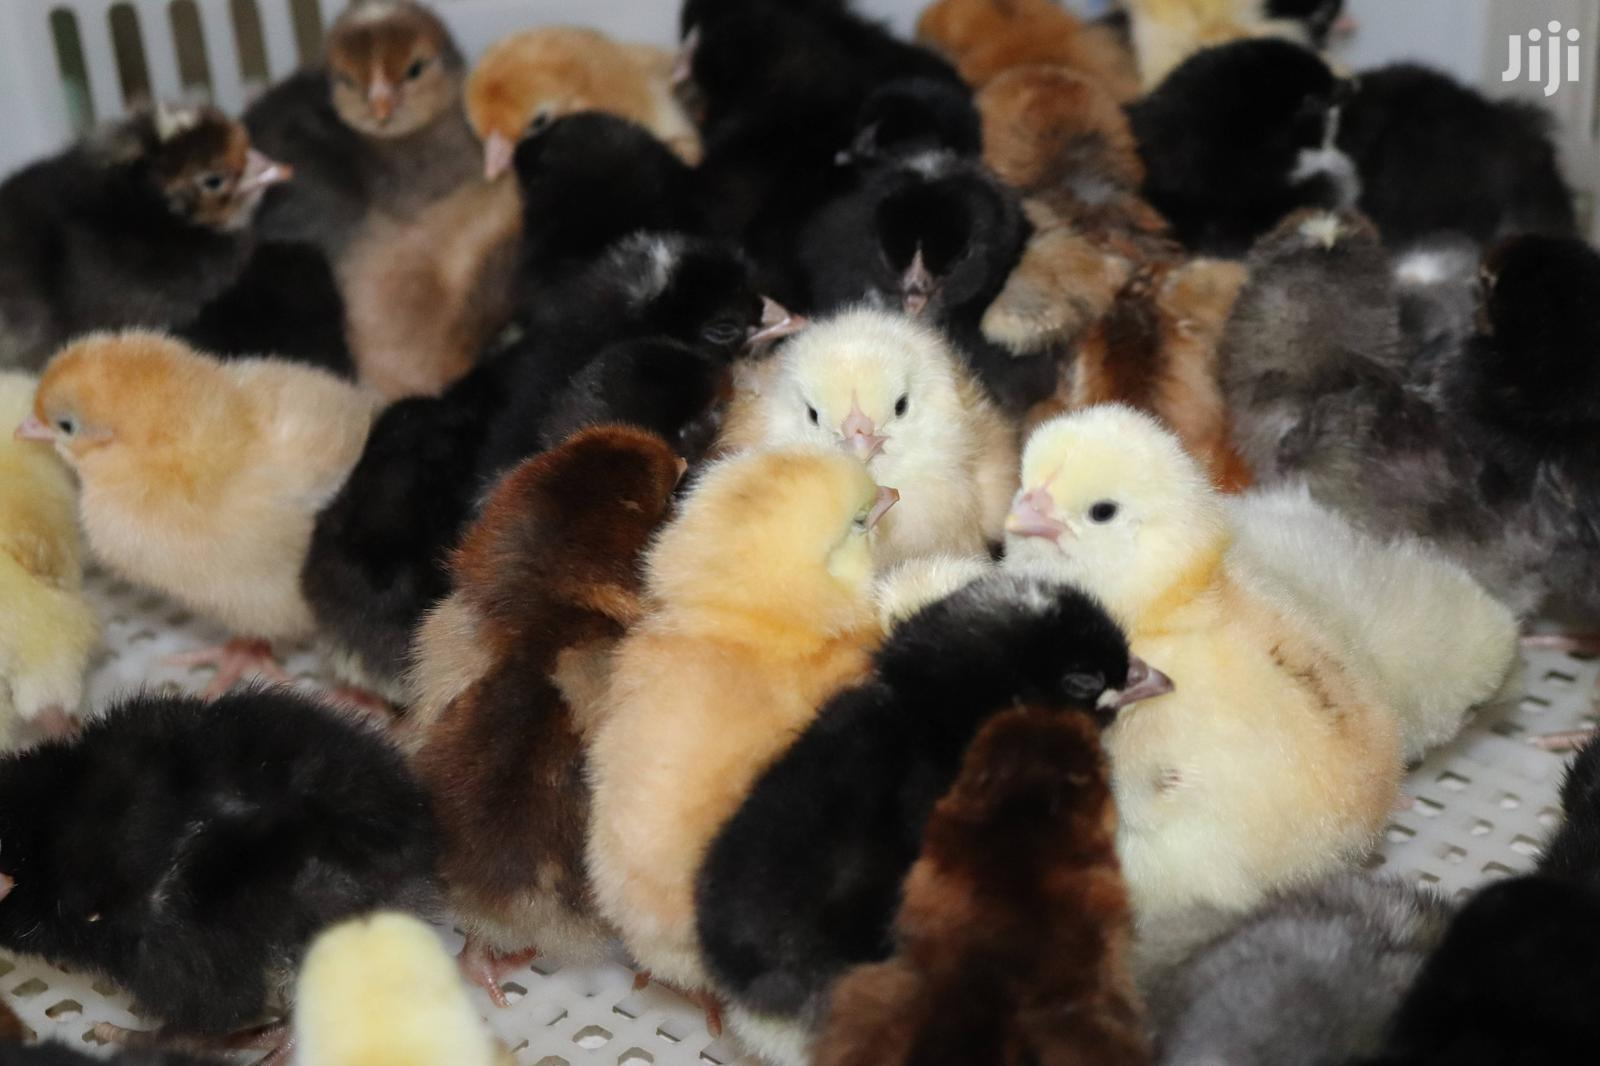 JULY MID YEAR OFFER - Improved Kienyeji Day Old Chicks